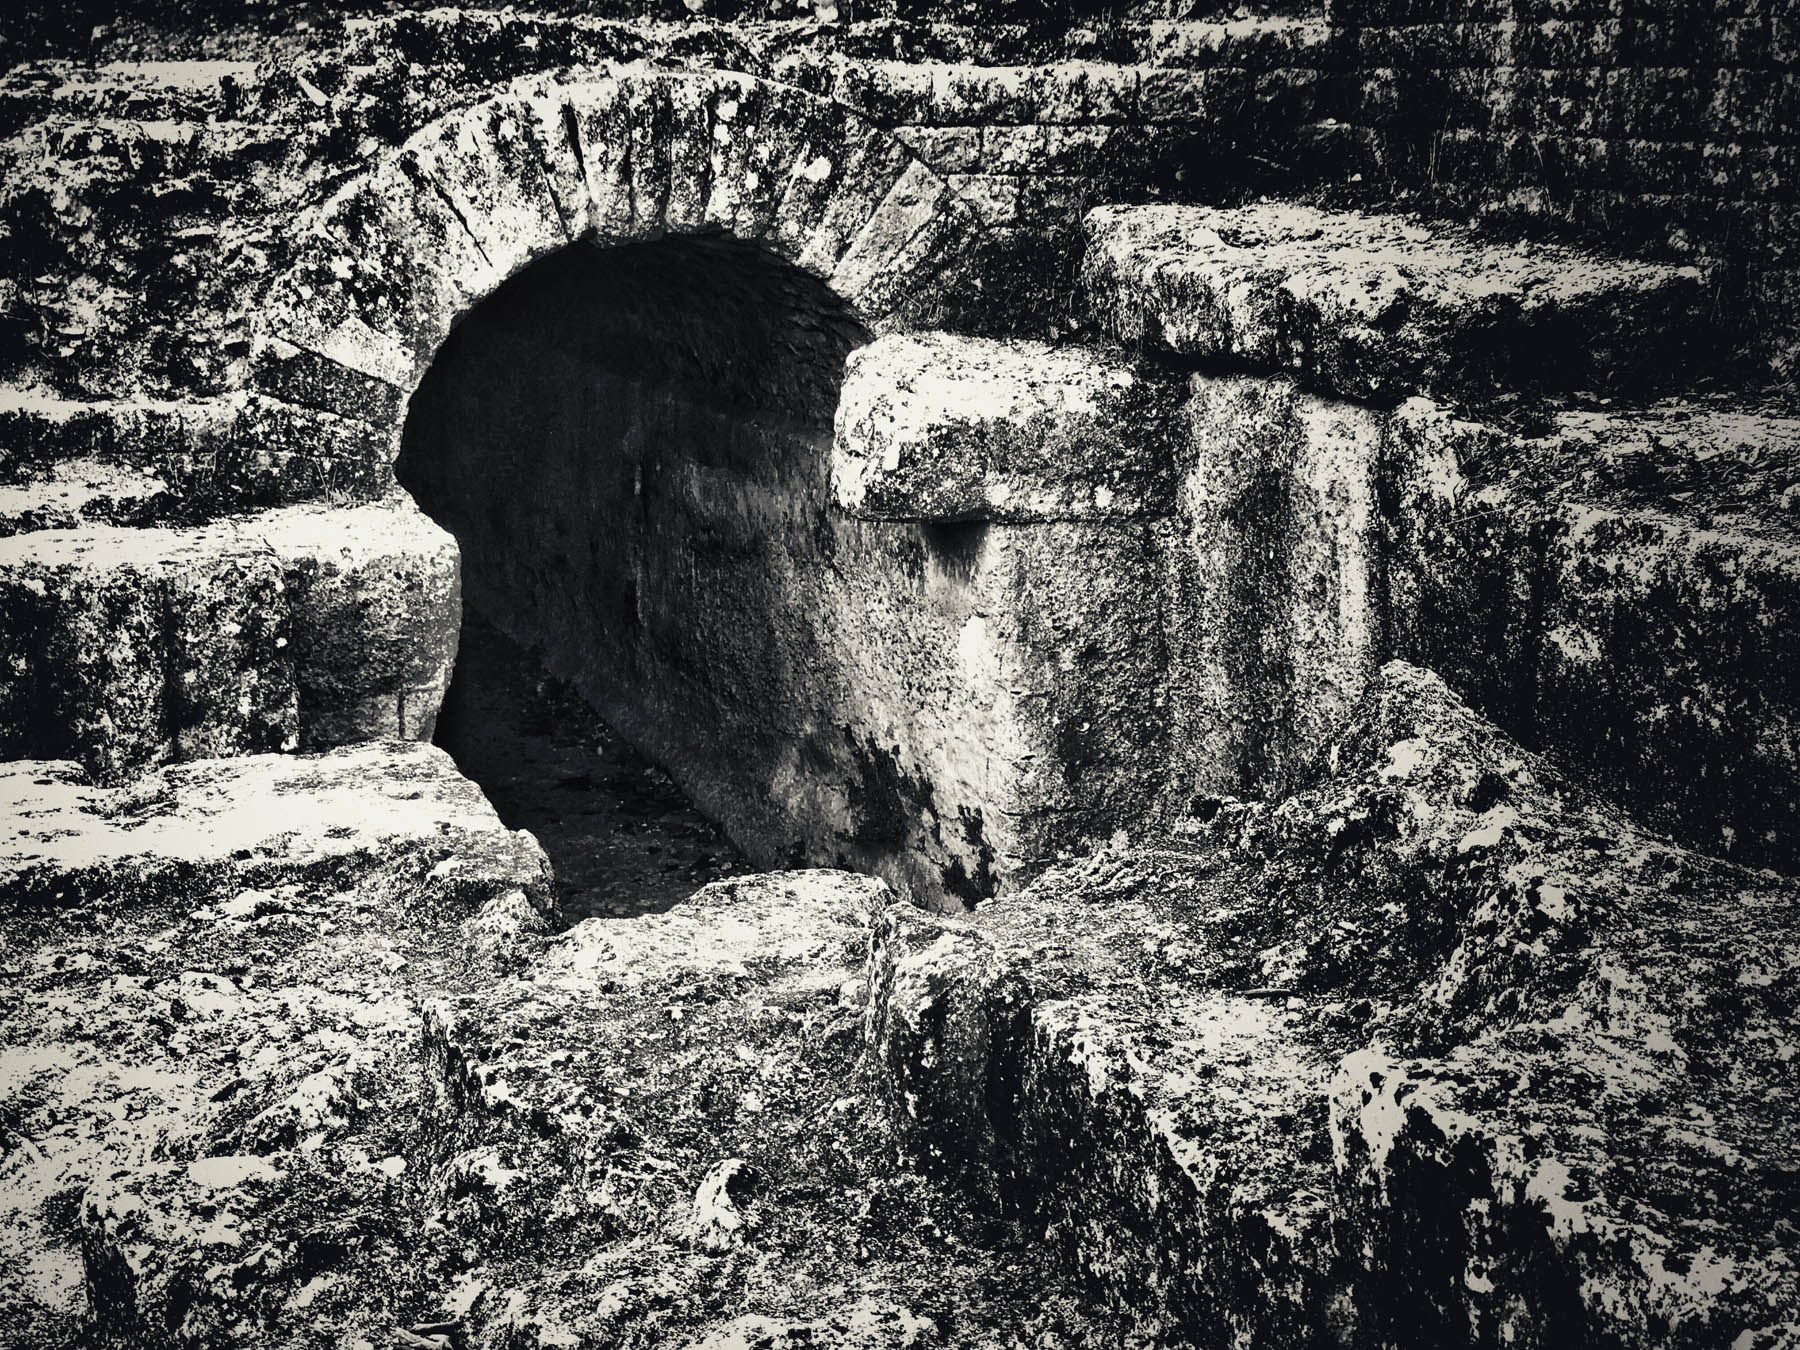 The regulation basin, located near the source, used sluice gates to control the flow of water into the aqueduct and return excess to the Alzon River. From here, over the next 3 kilometres, there are extensive visible vestiges of the channel as it winds south before tracking east towards the Gardon and the Pont du Gard.